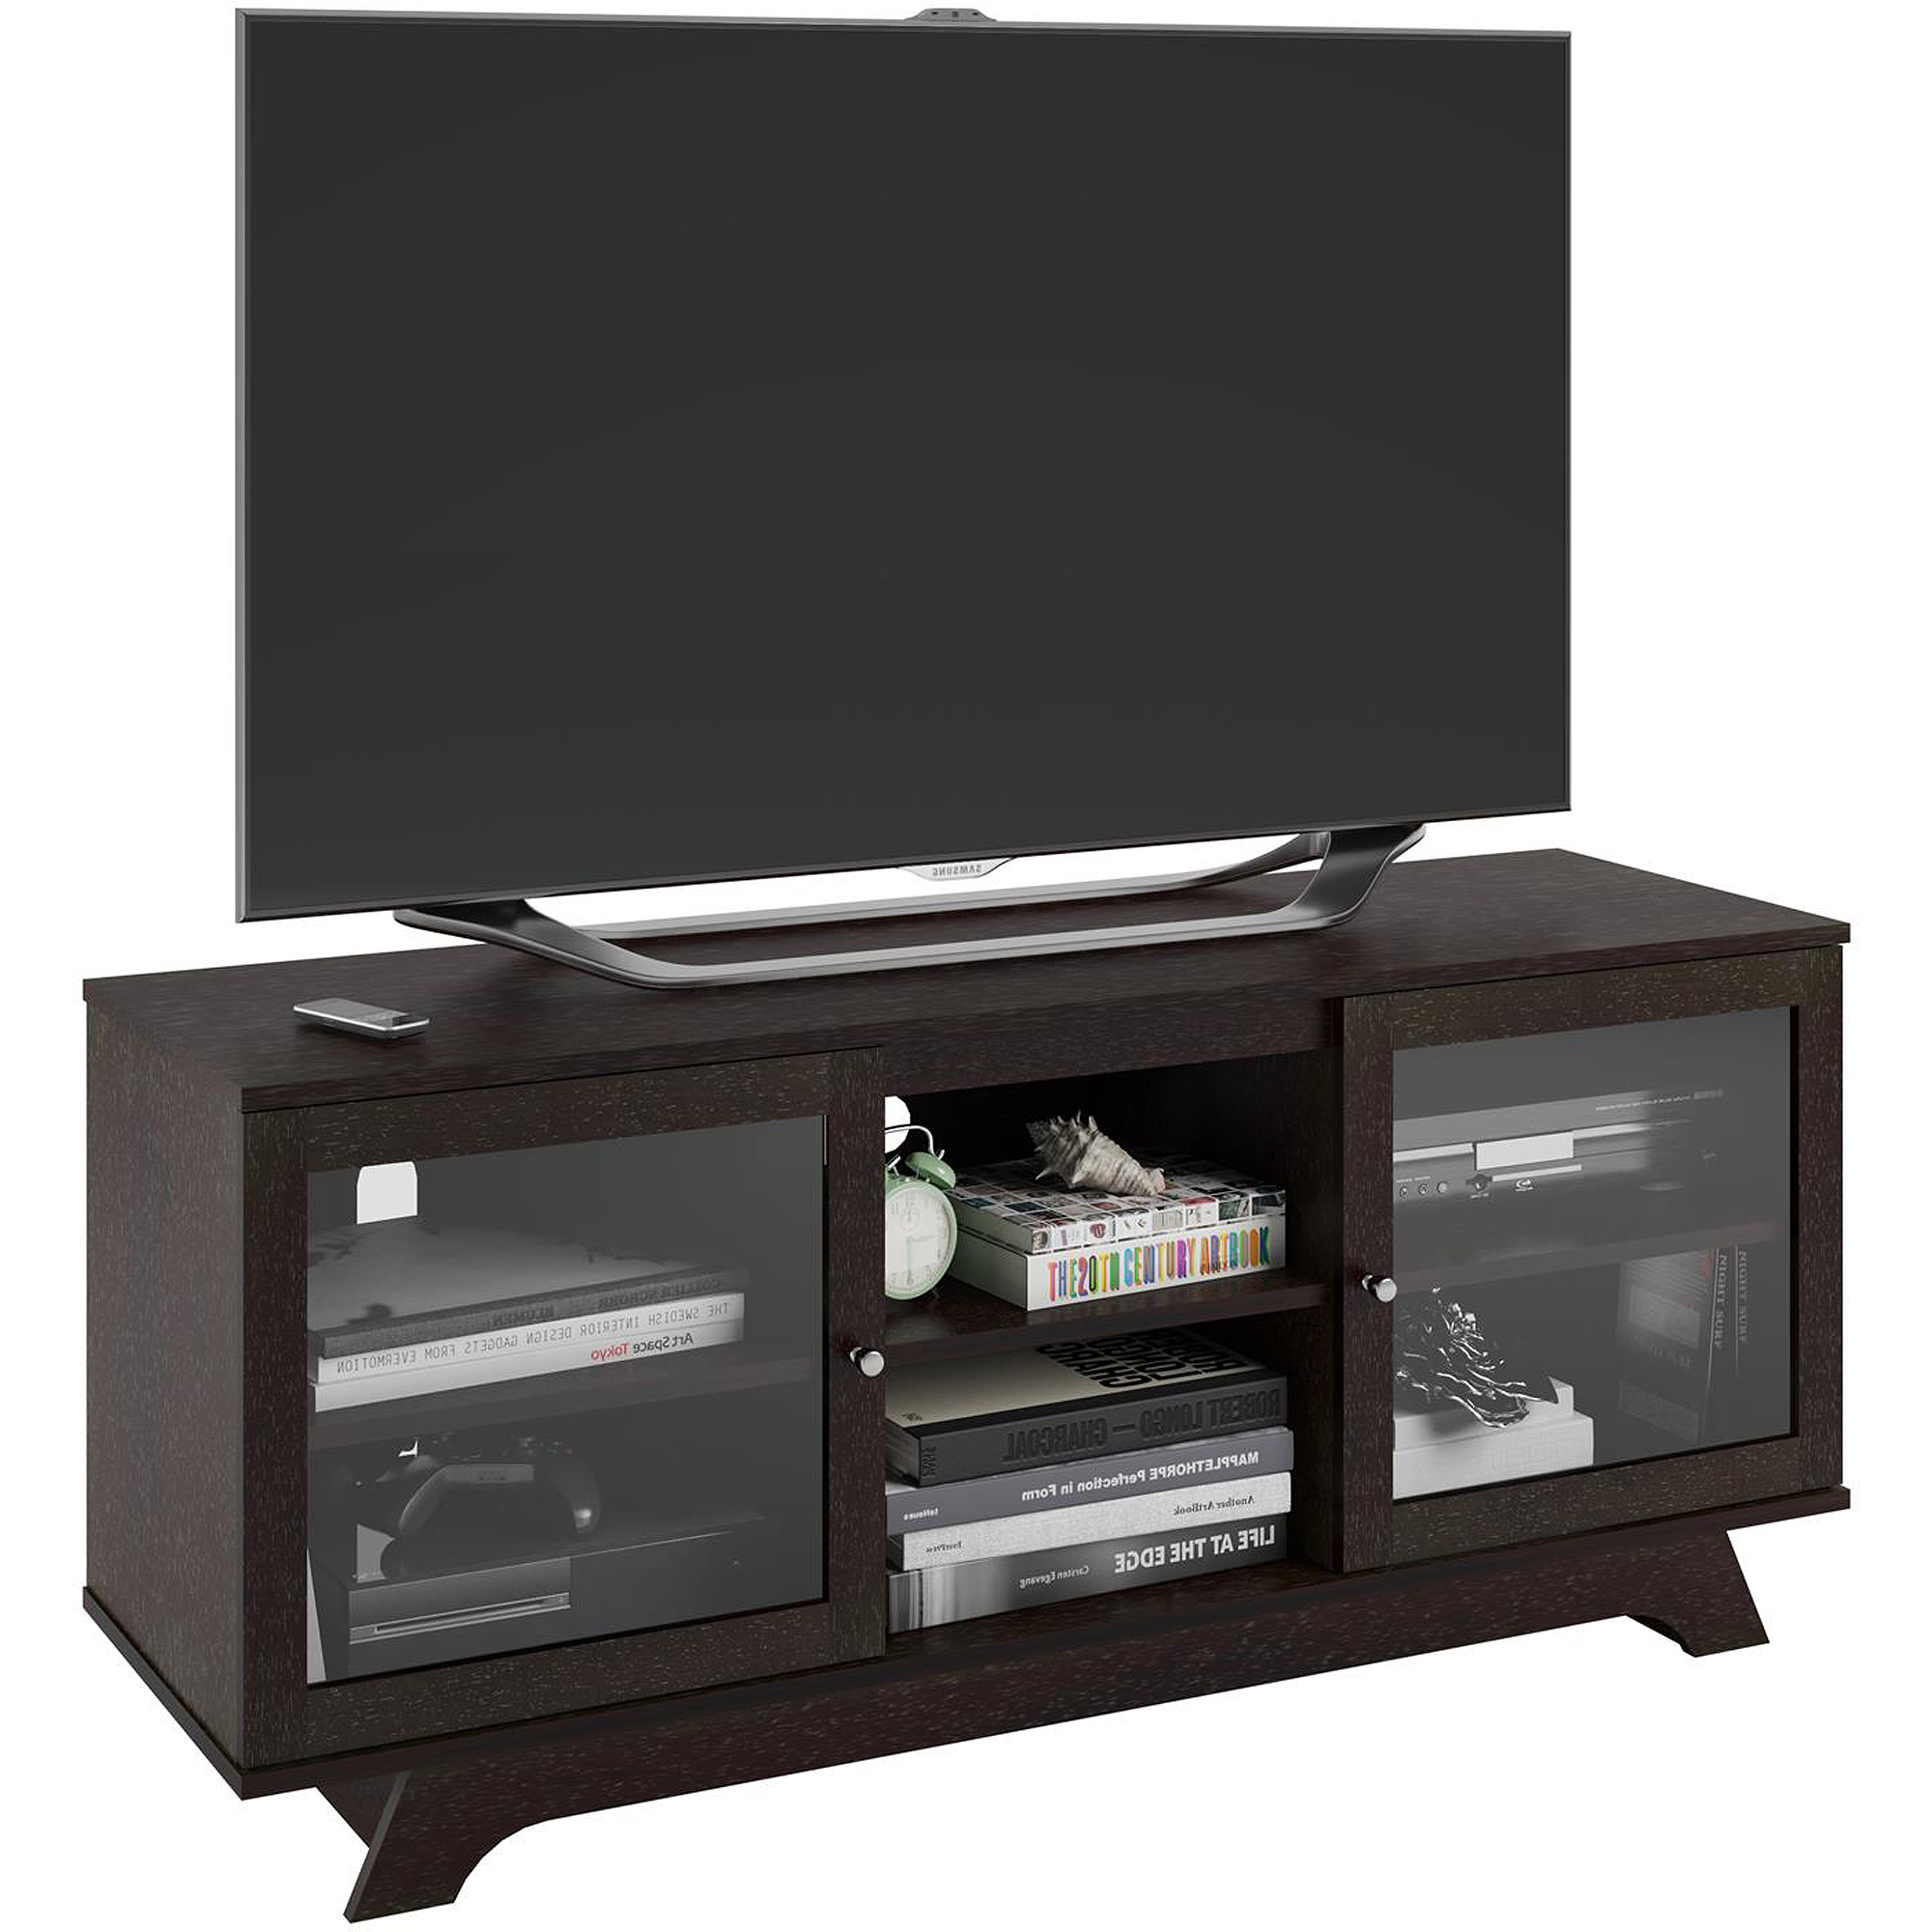 "Well Liked Wooden Tv Stands With Glass Doors With Ameriwood Home Englewood Tv Stand For Tvs Up To 55"", Espresso (View 16 of 20)"